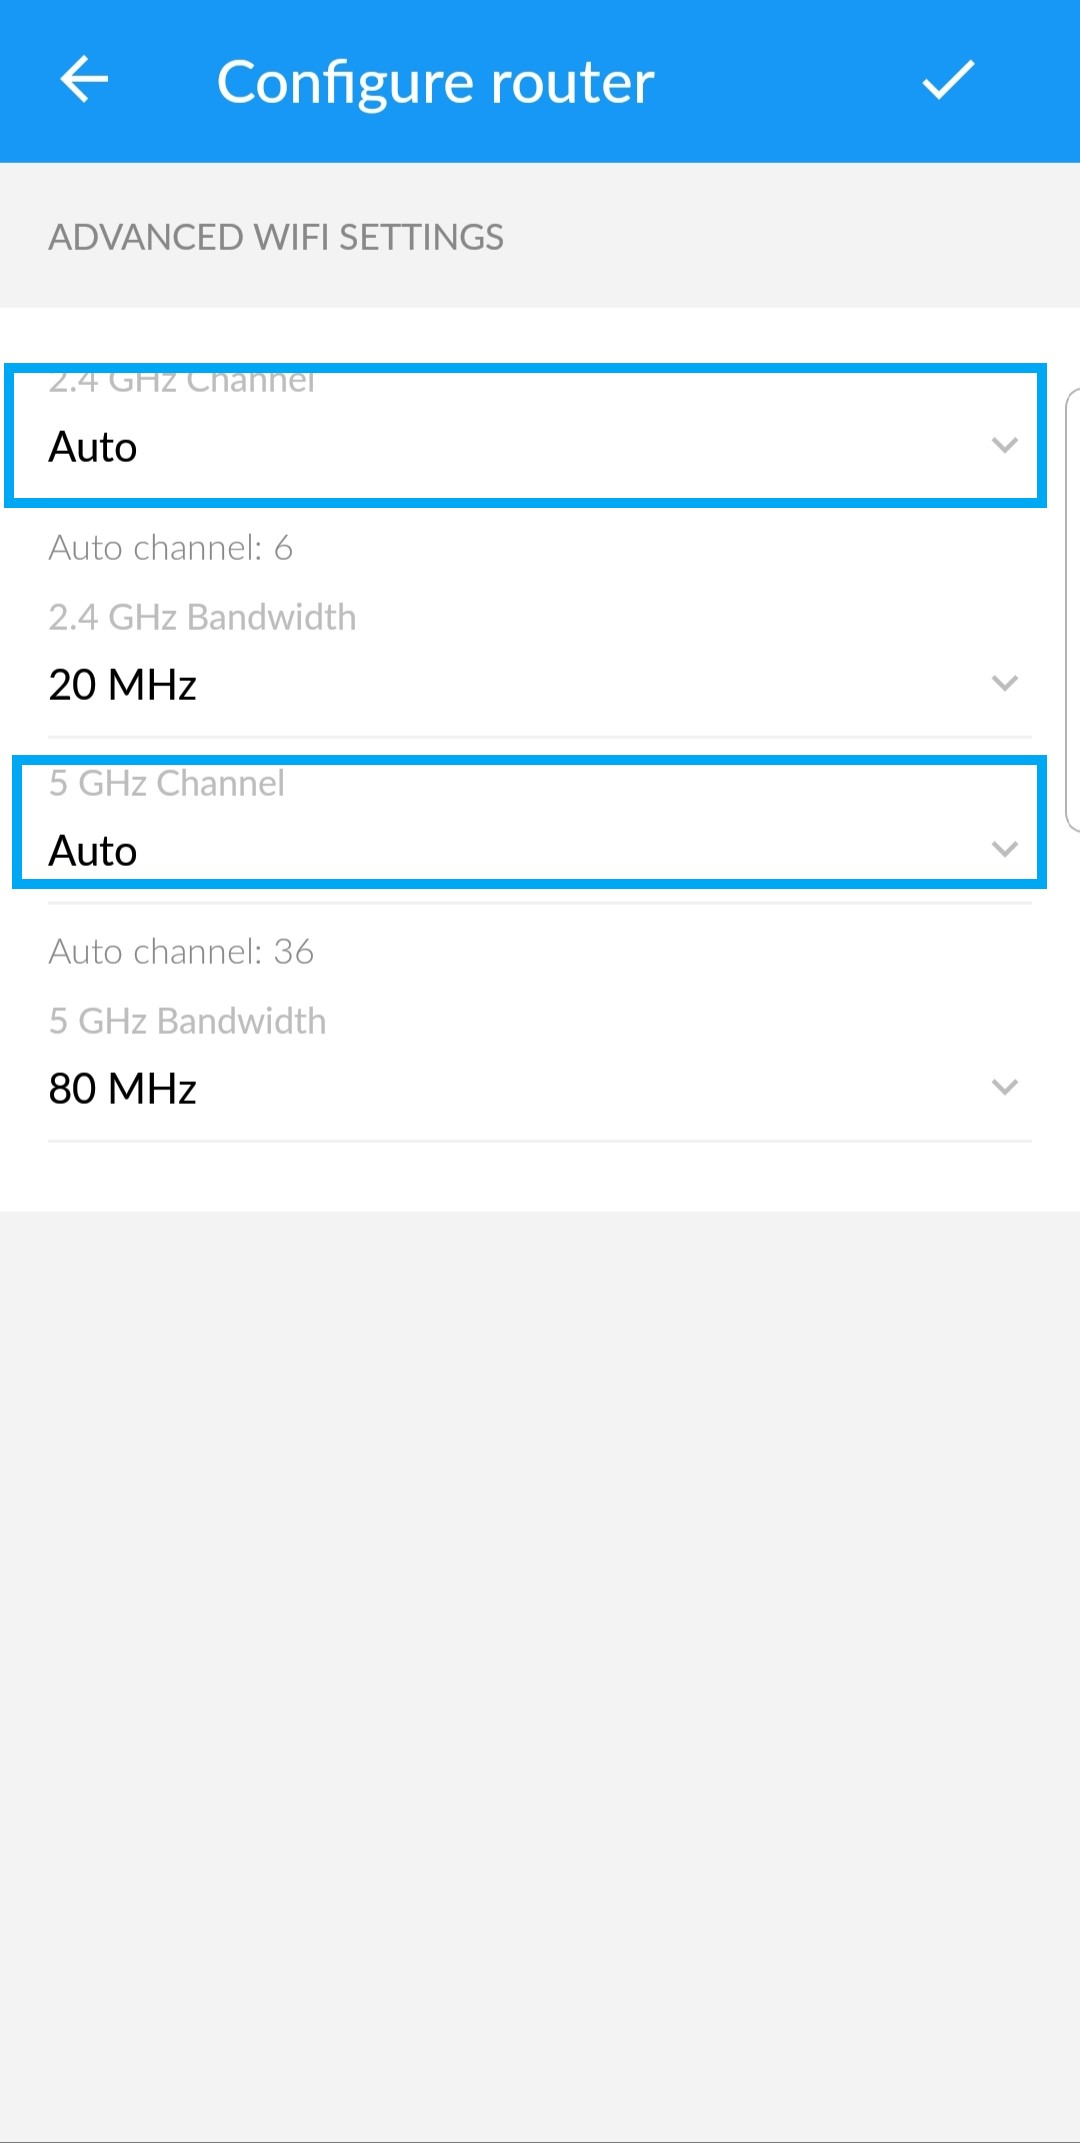 Troubleshooting: WiFi Disconnections and Stability Issues